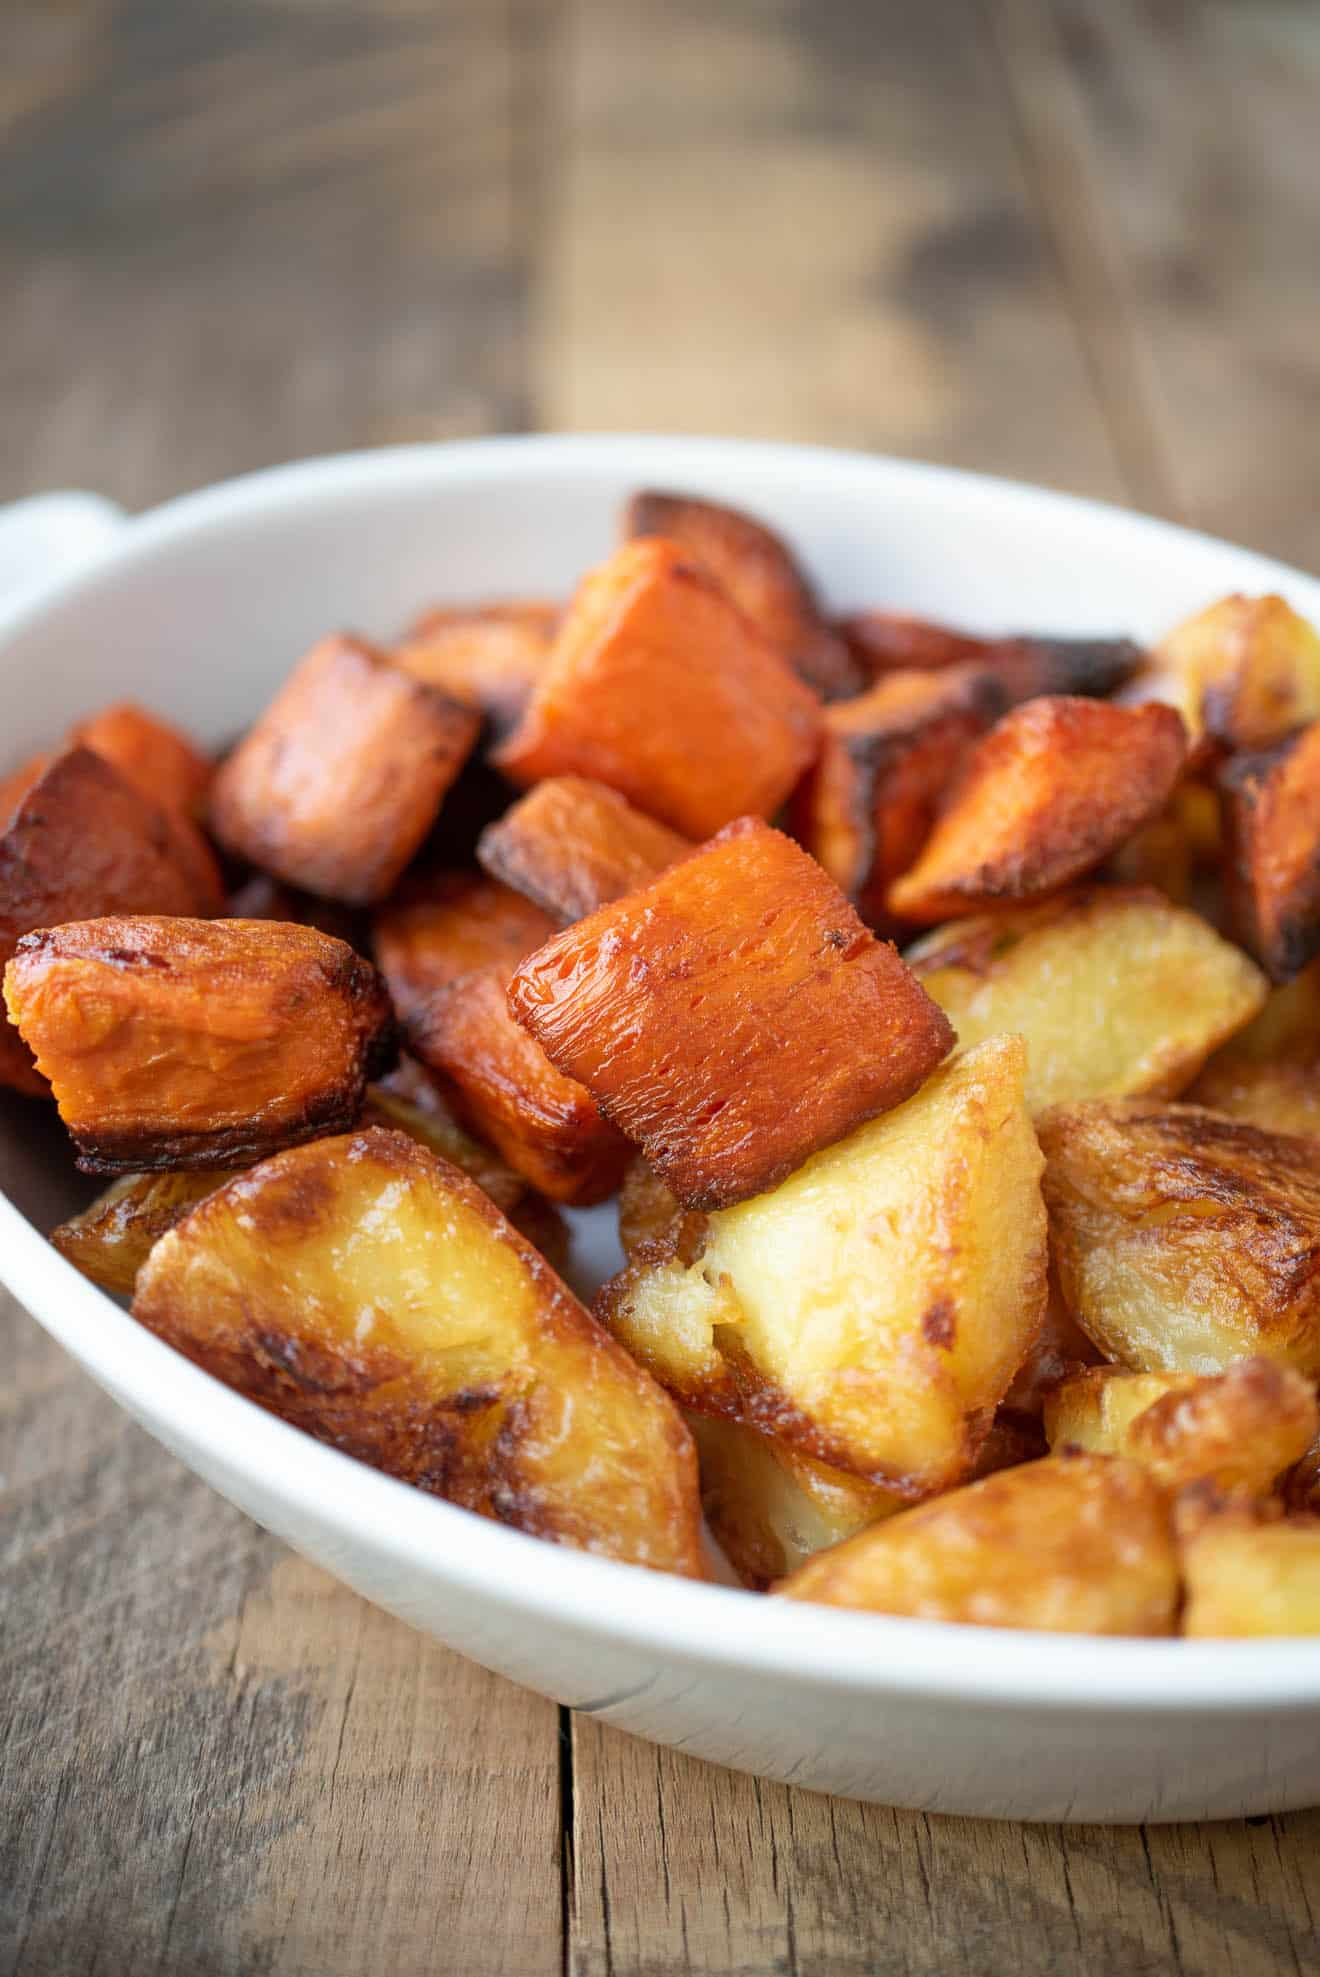 Roasted sweet potatoes/yam and regular potatoes in a white dish